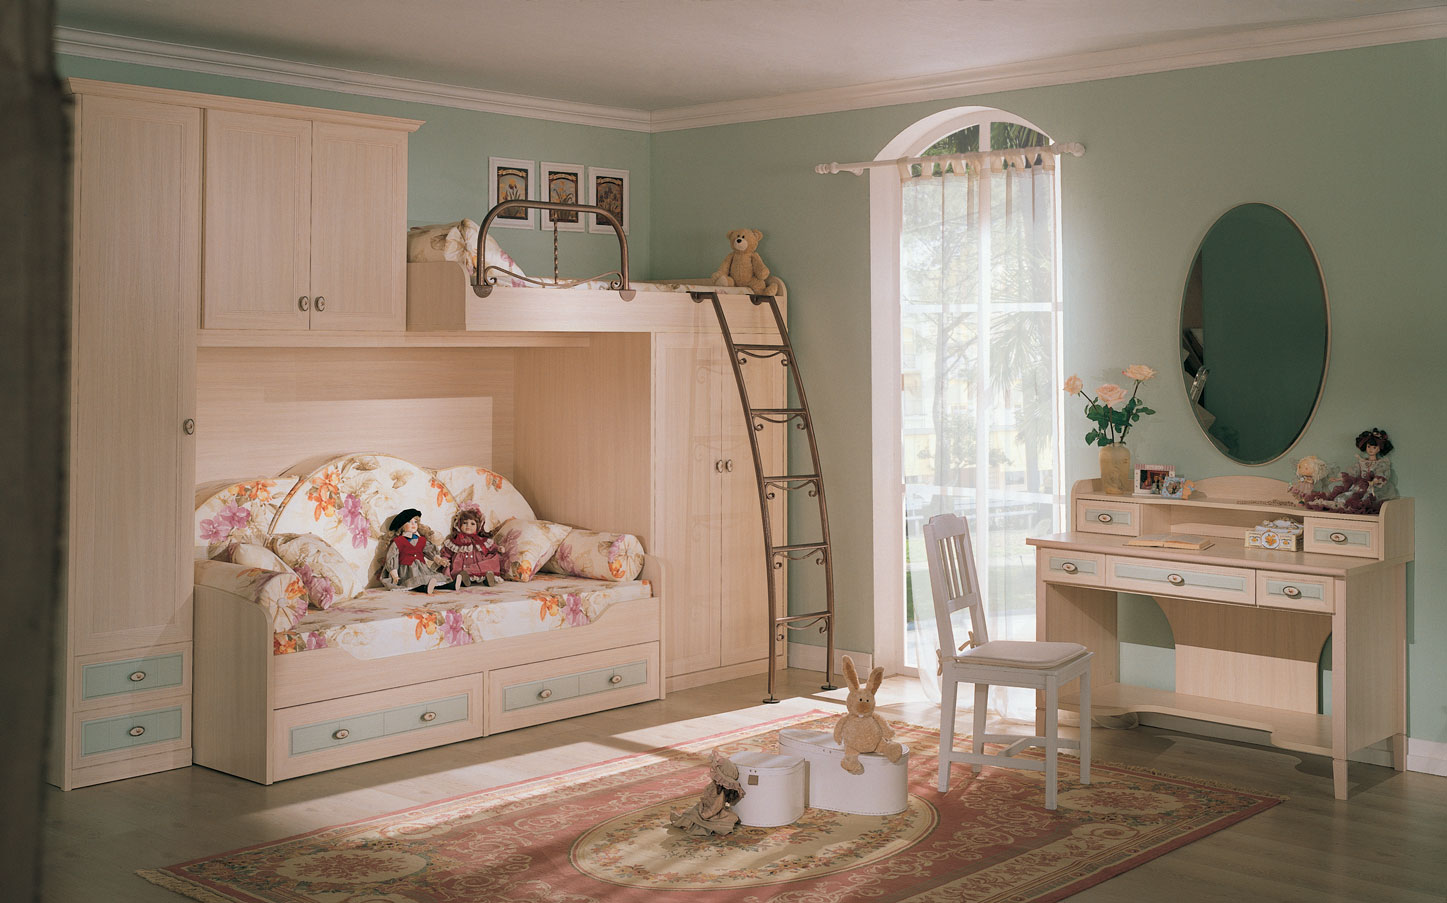 Amazing Victorian Kids Room 1447 x 903 · 211 kB · jpeg